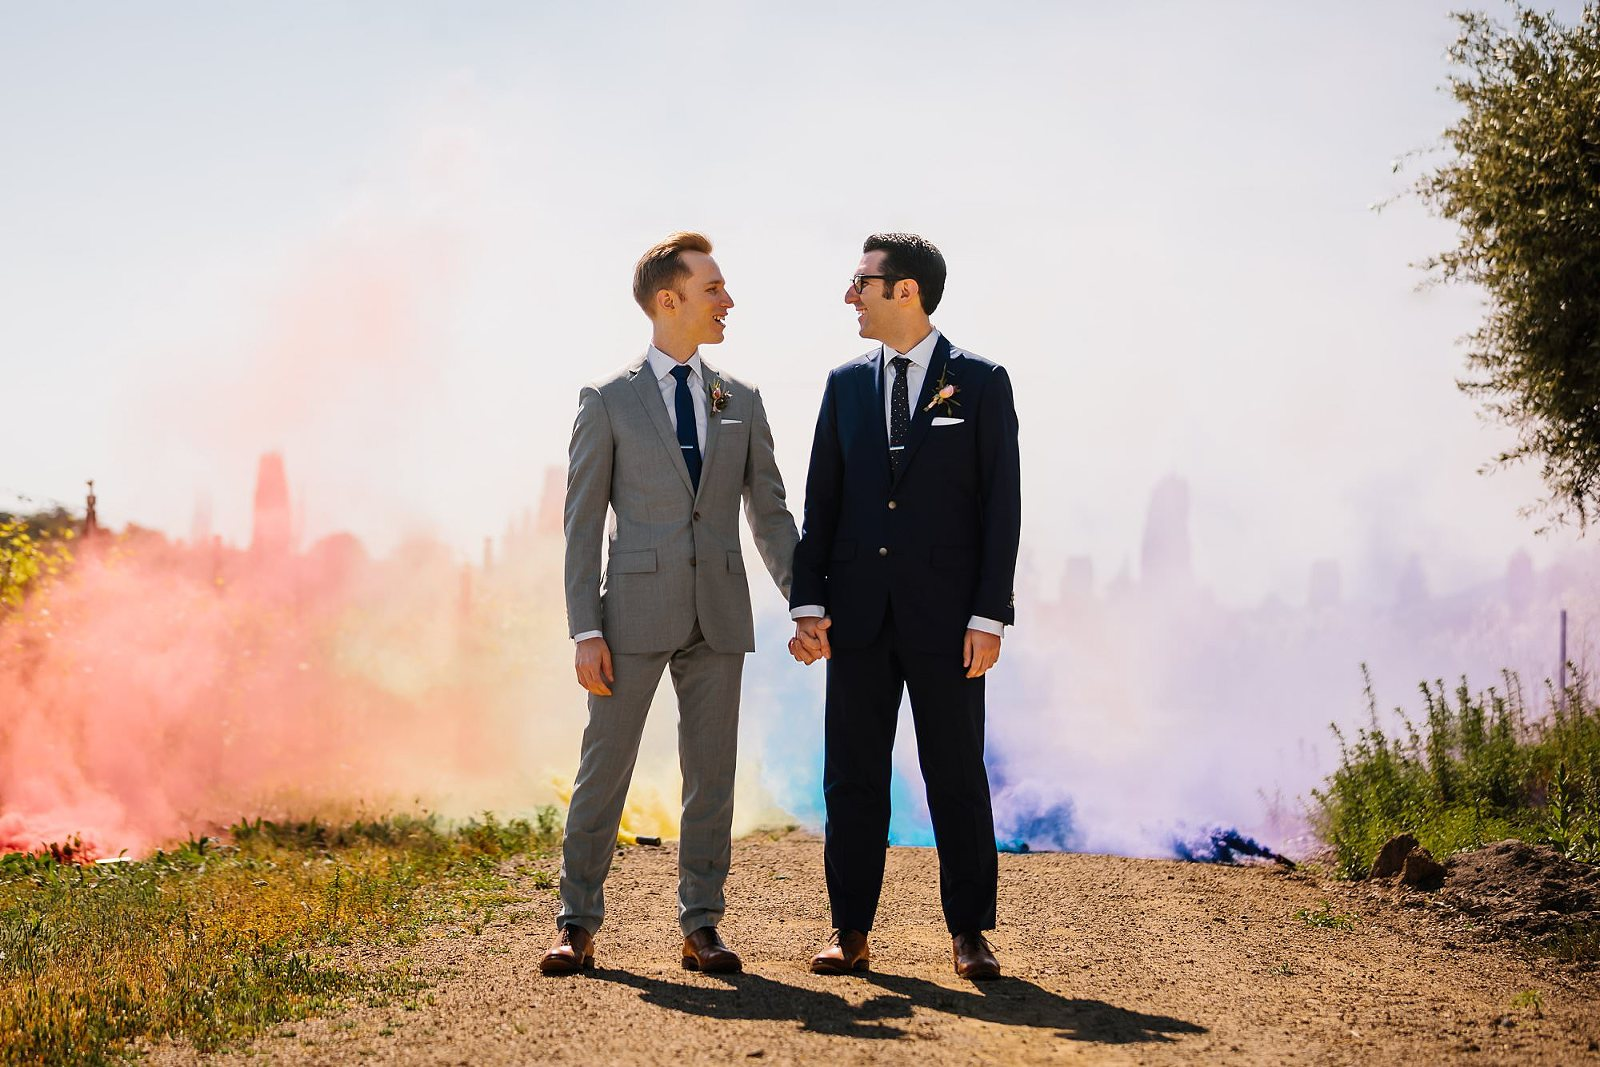 Rainbow smoke bombs provide a colorful backdrop in the vineyard where a couple hold hands on their way to their ceremony at Vintners Inn in Santa Rosa